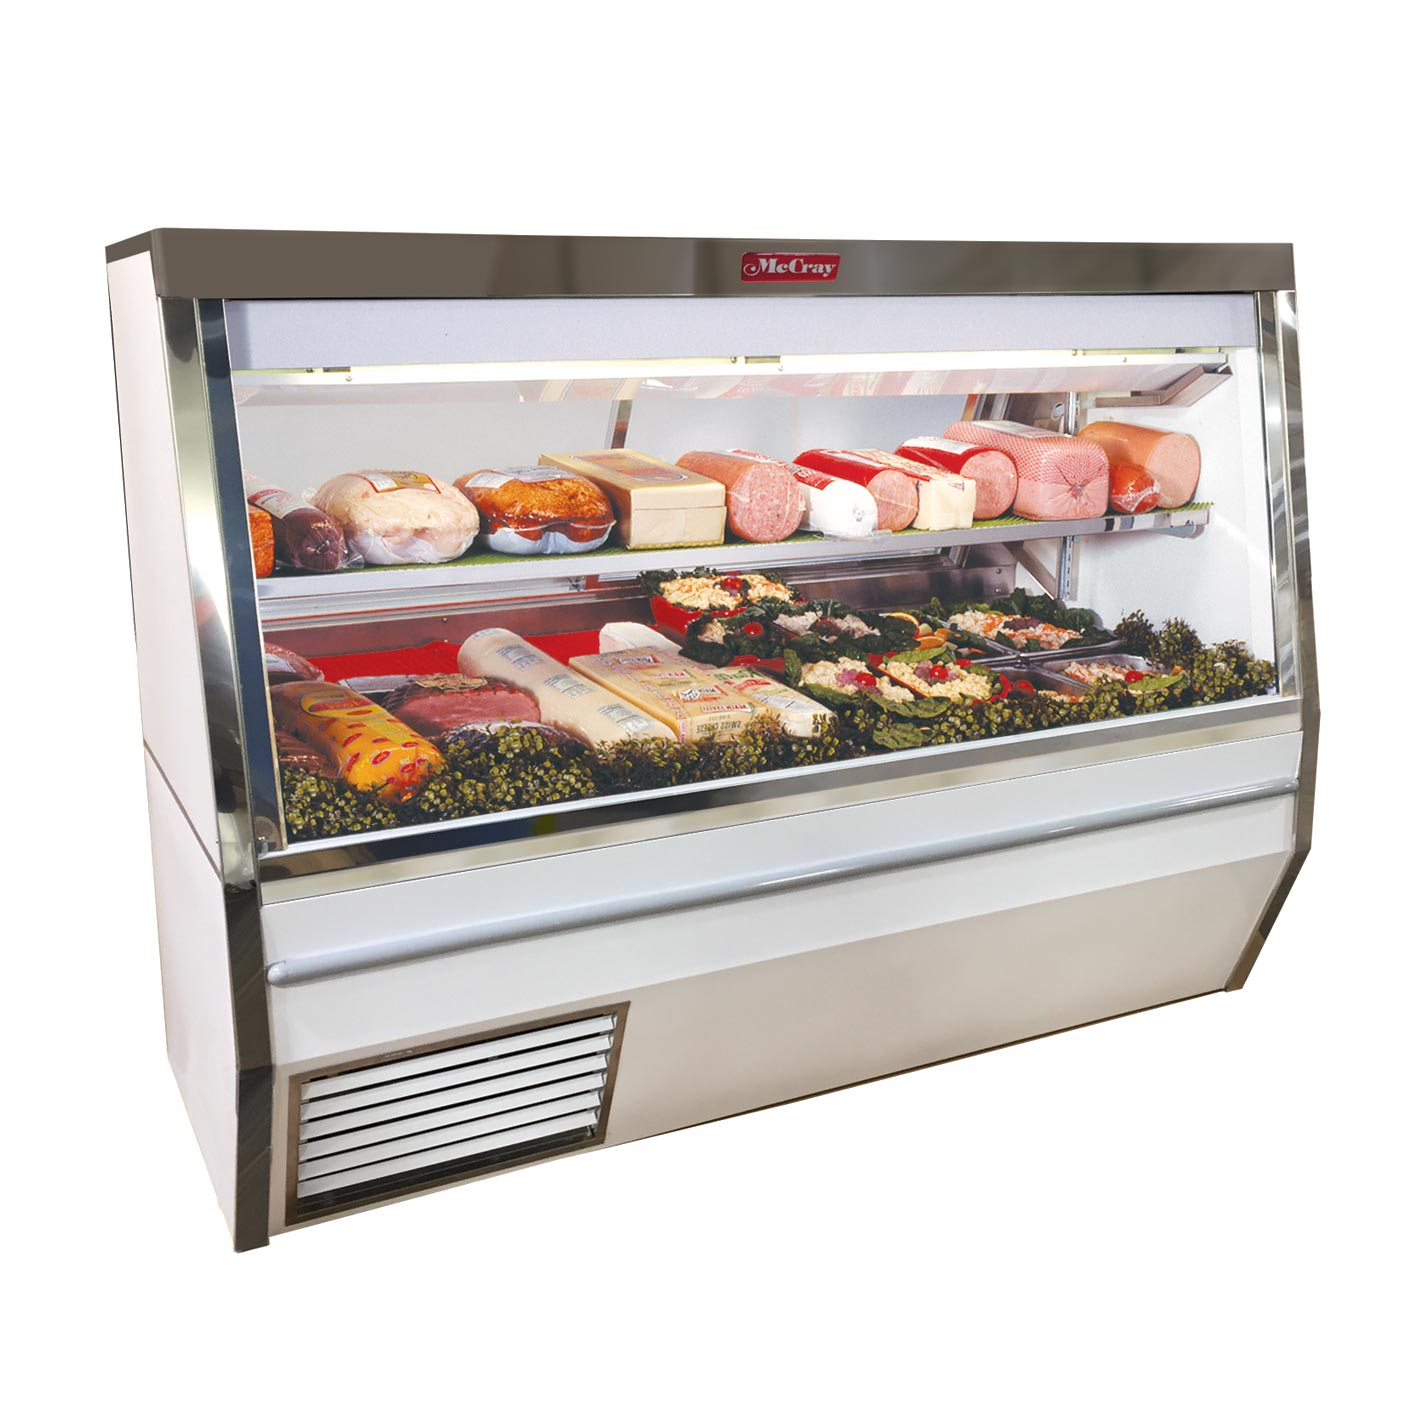 Howard-McCray R-CDS34N-4-LED display case, refrigerated deli